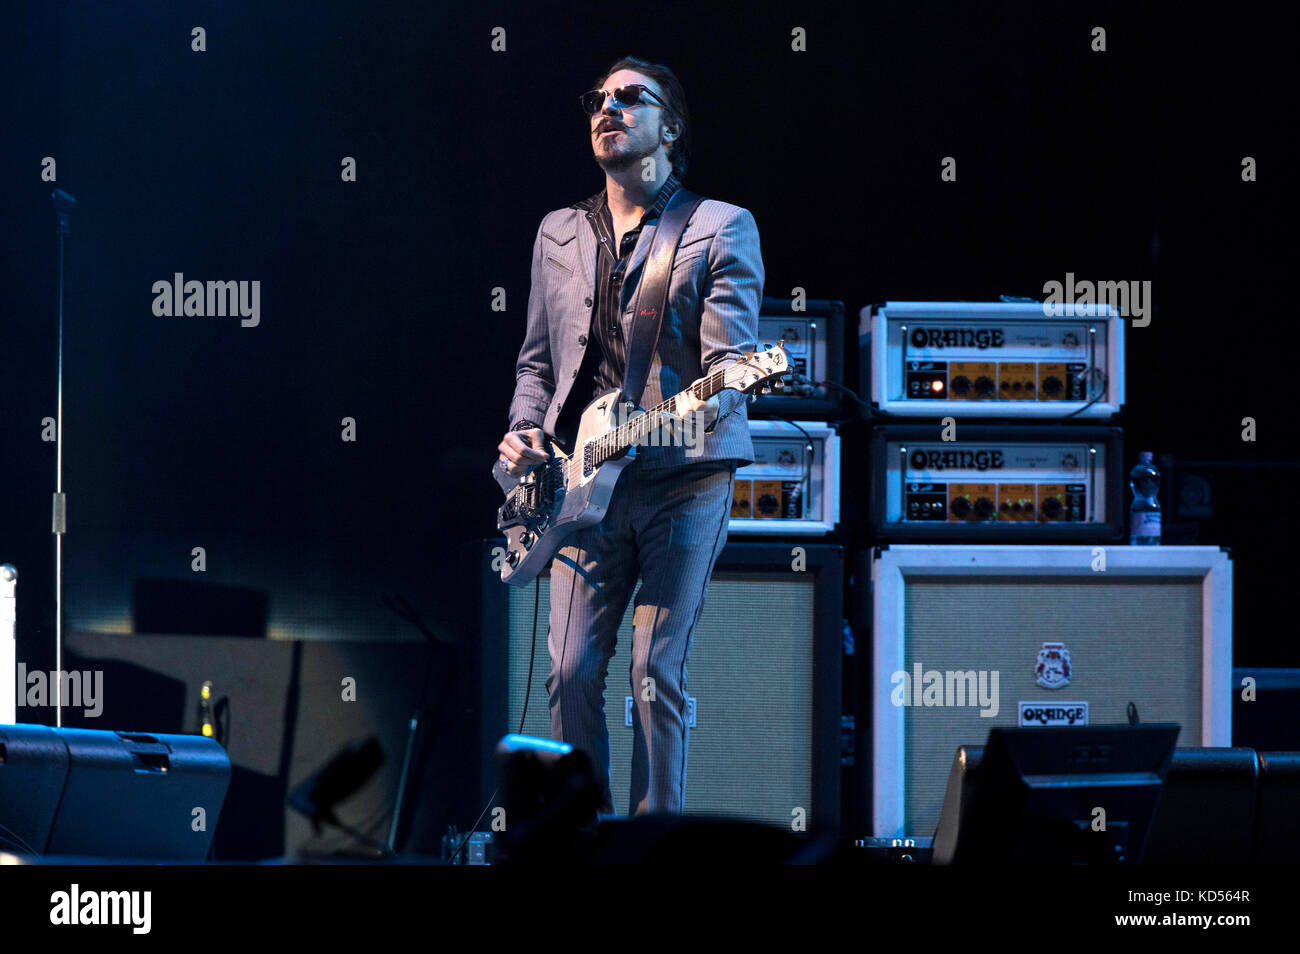 1bcdf38f5821 Rival Sons perform live on stage at the Esprit Arena on October 8, 2017 in  Dusseldorf, Germany.